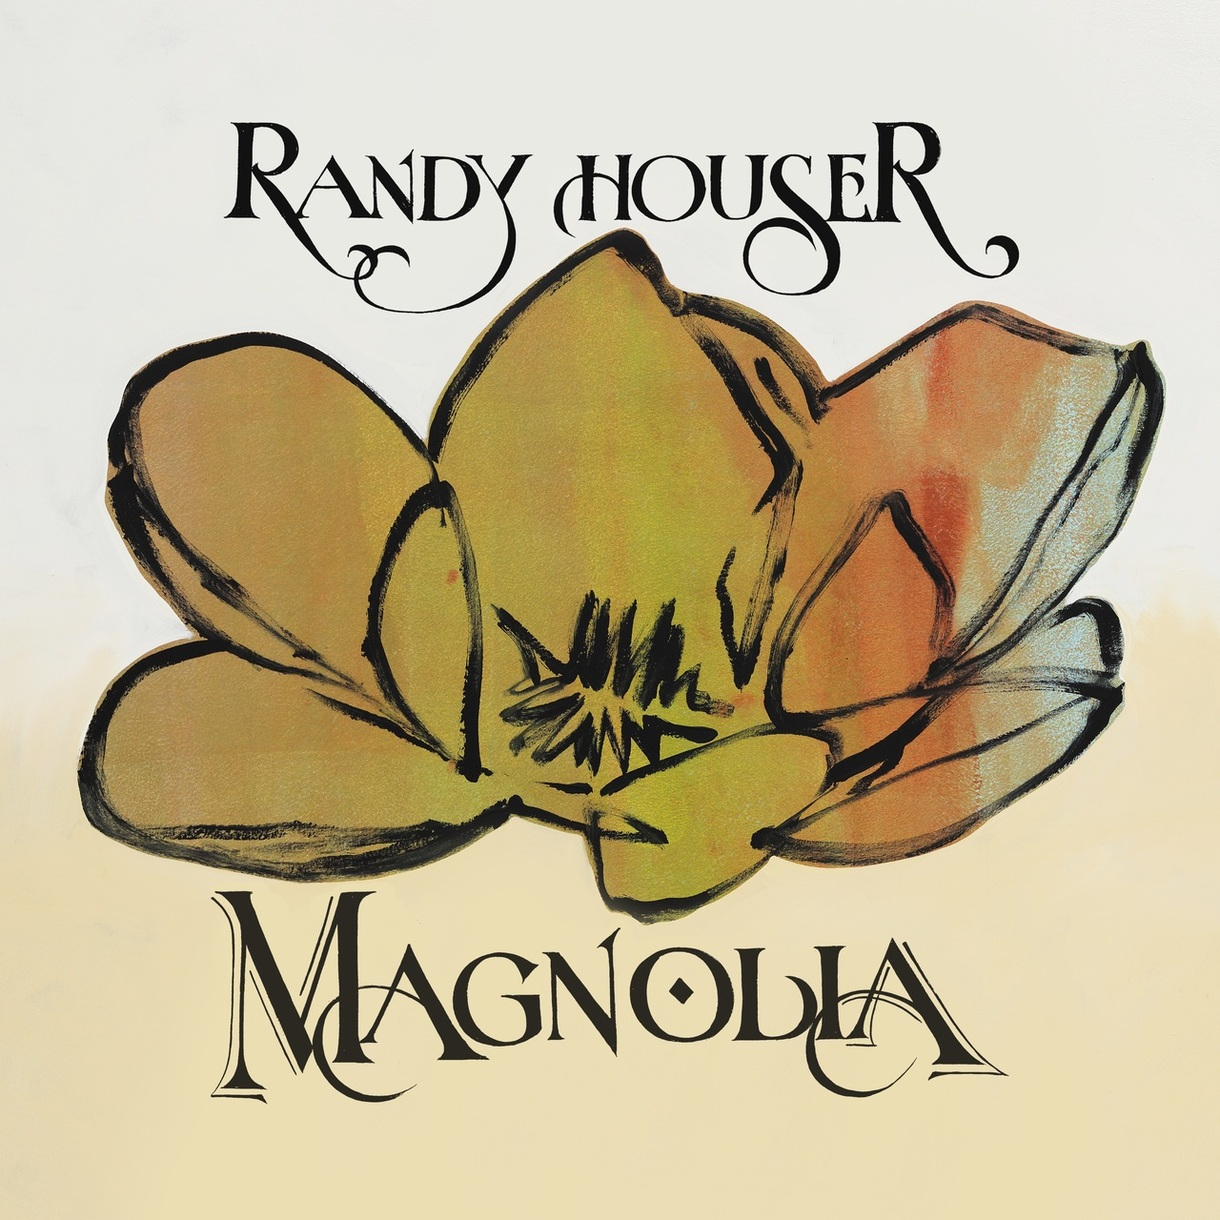 RANDY HOUSER'S NEW ALBUM, MAGNOLIA,  AVAILABLE NOW